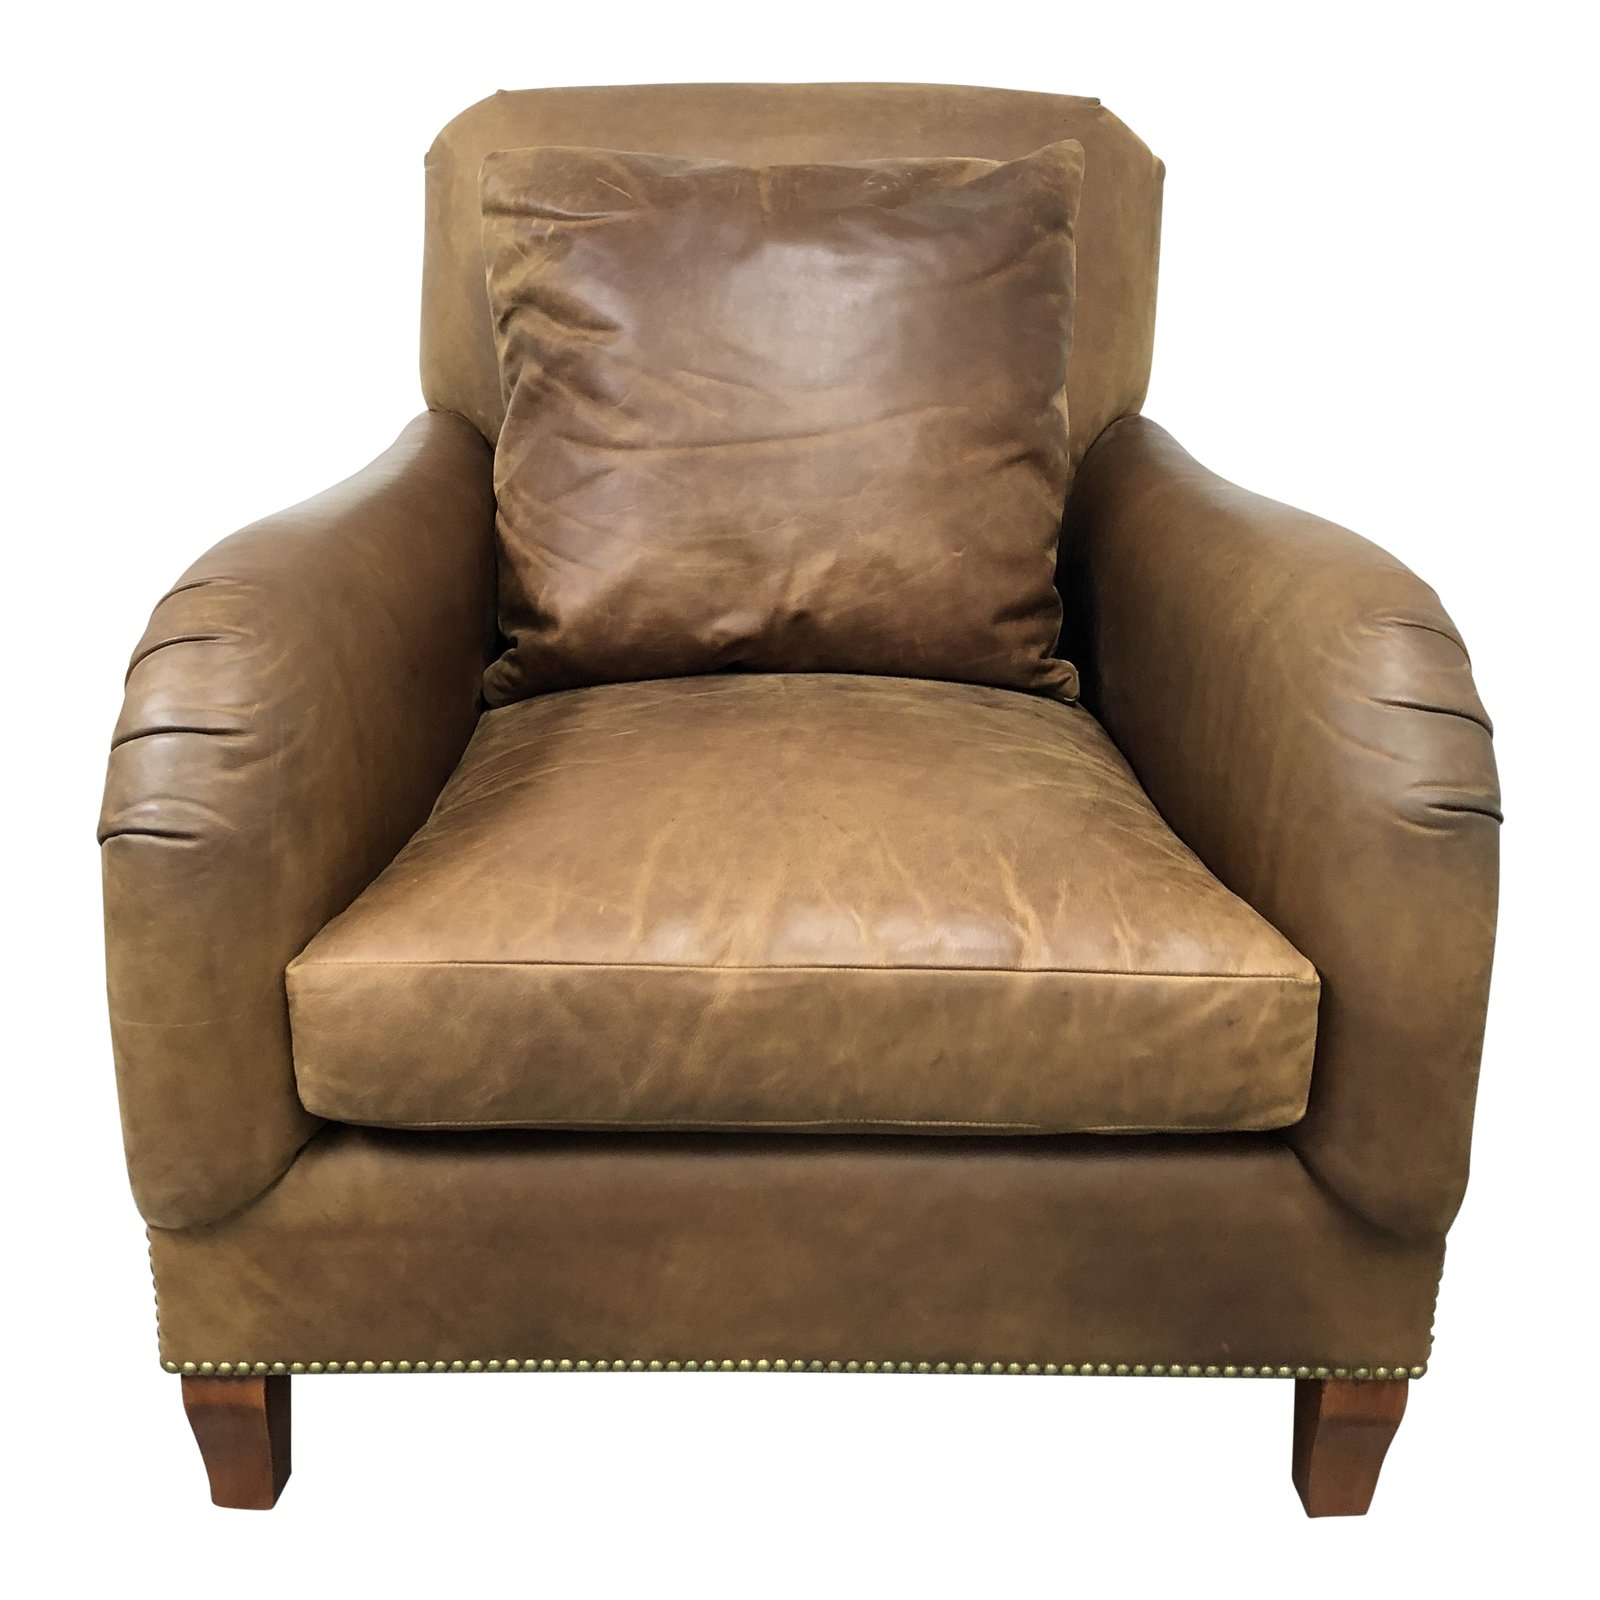 Stupendous Distressed Leather Club Chair By Ralph Lauren Home Design Camellatalisay Diy Chair Ideas Camellatalisaycom